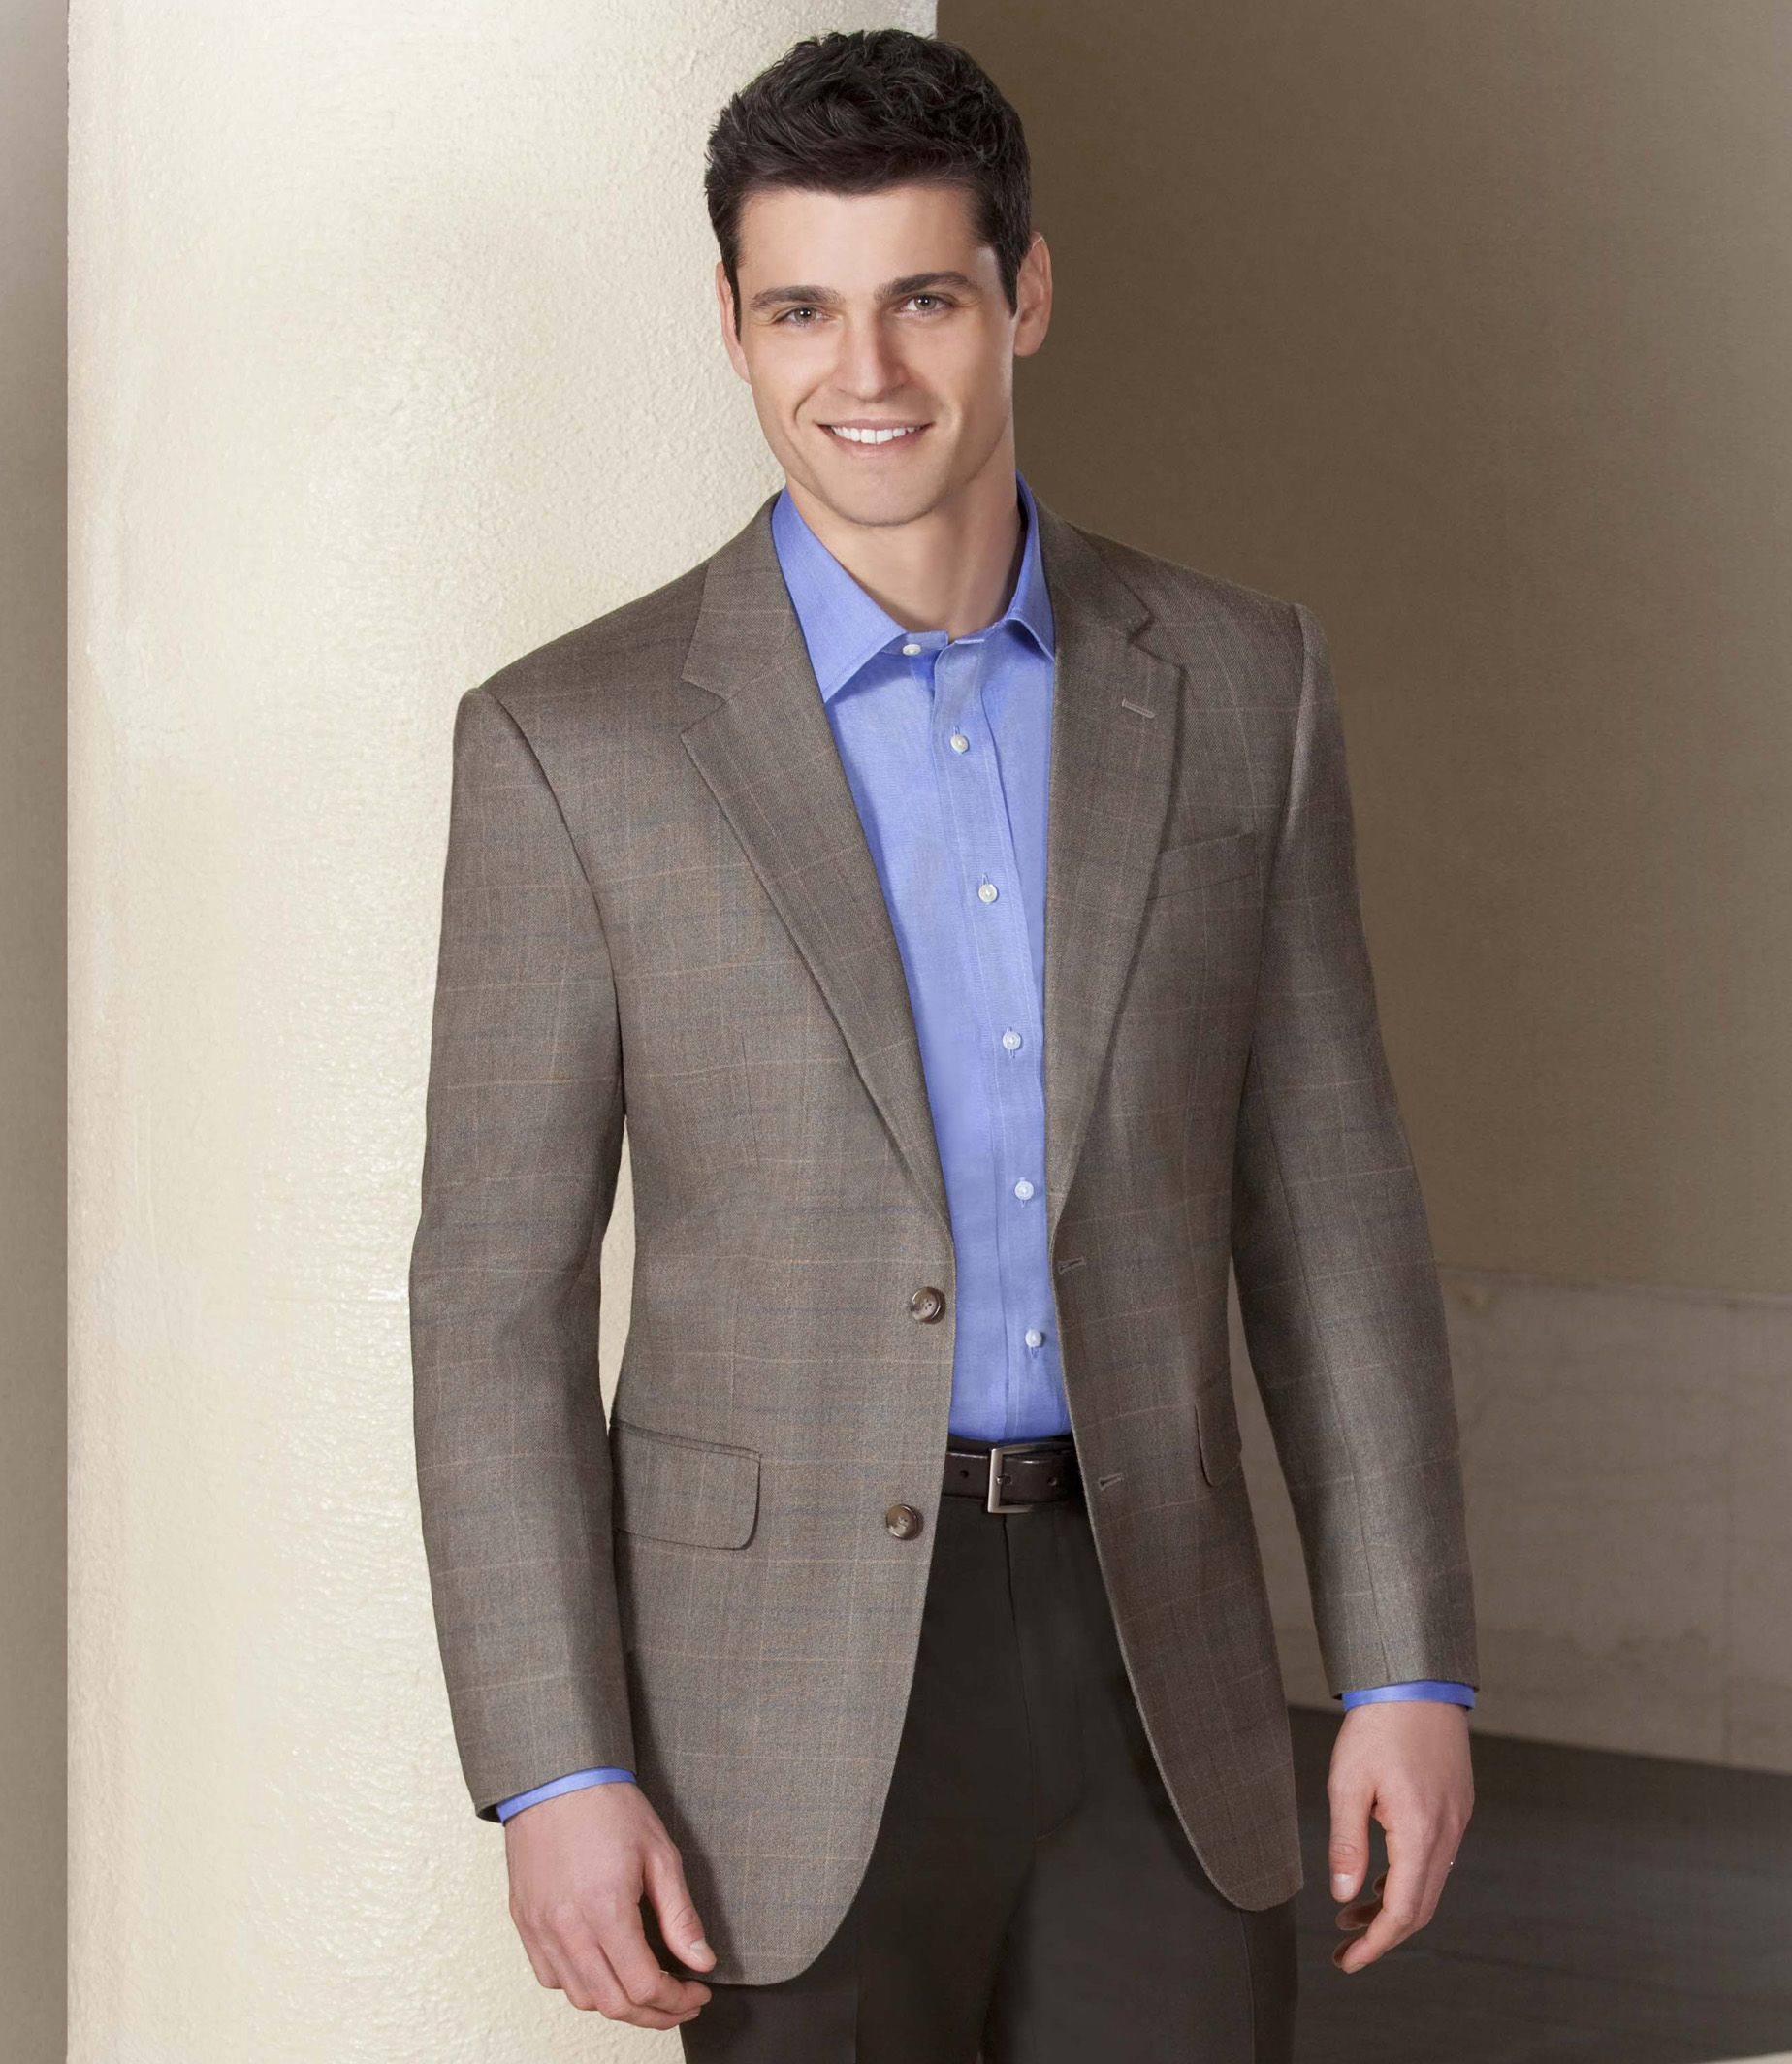 Men's sport coats are available in a wide variety of colors and styles at Sears, ranging from two-button cotton sport coats to knit blazers that make it easy to roll up your sleeves when it's time to work. Give yourself a style boost without needing to worry about getting that suit or .